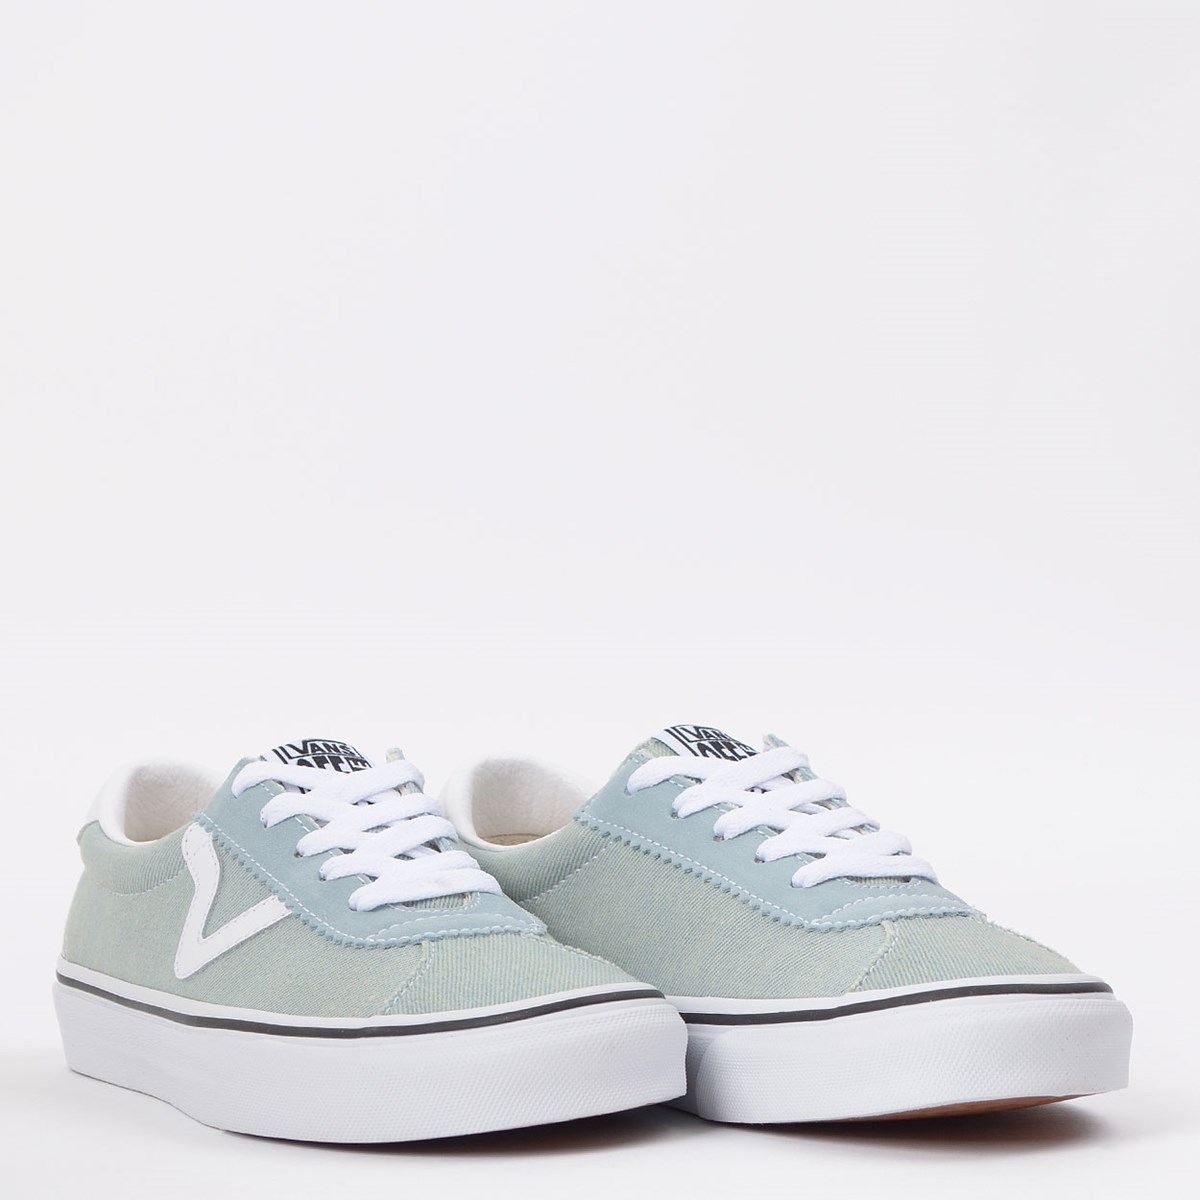 Tênis Vans Sport Washed True White VN0A4BU6XVZ